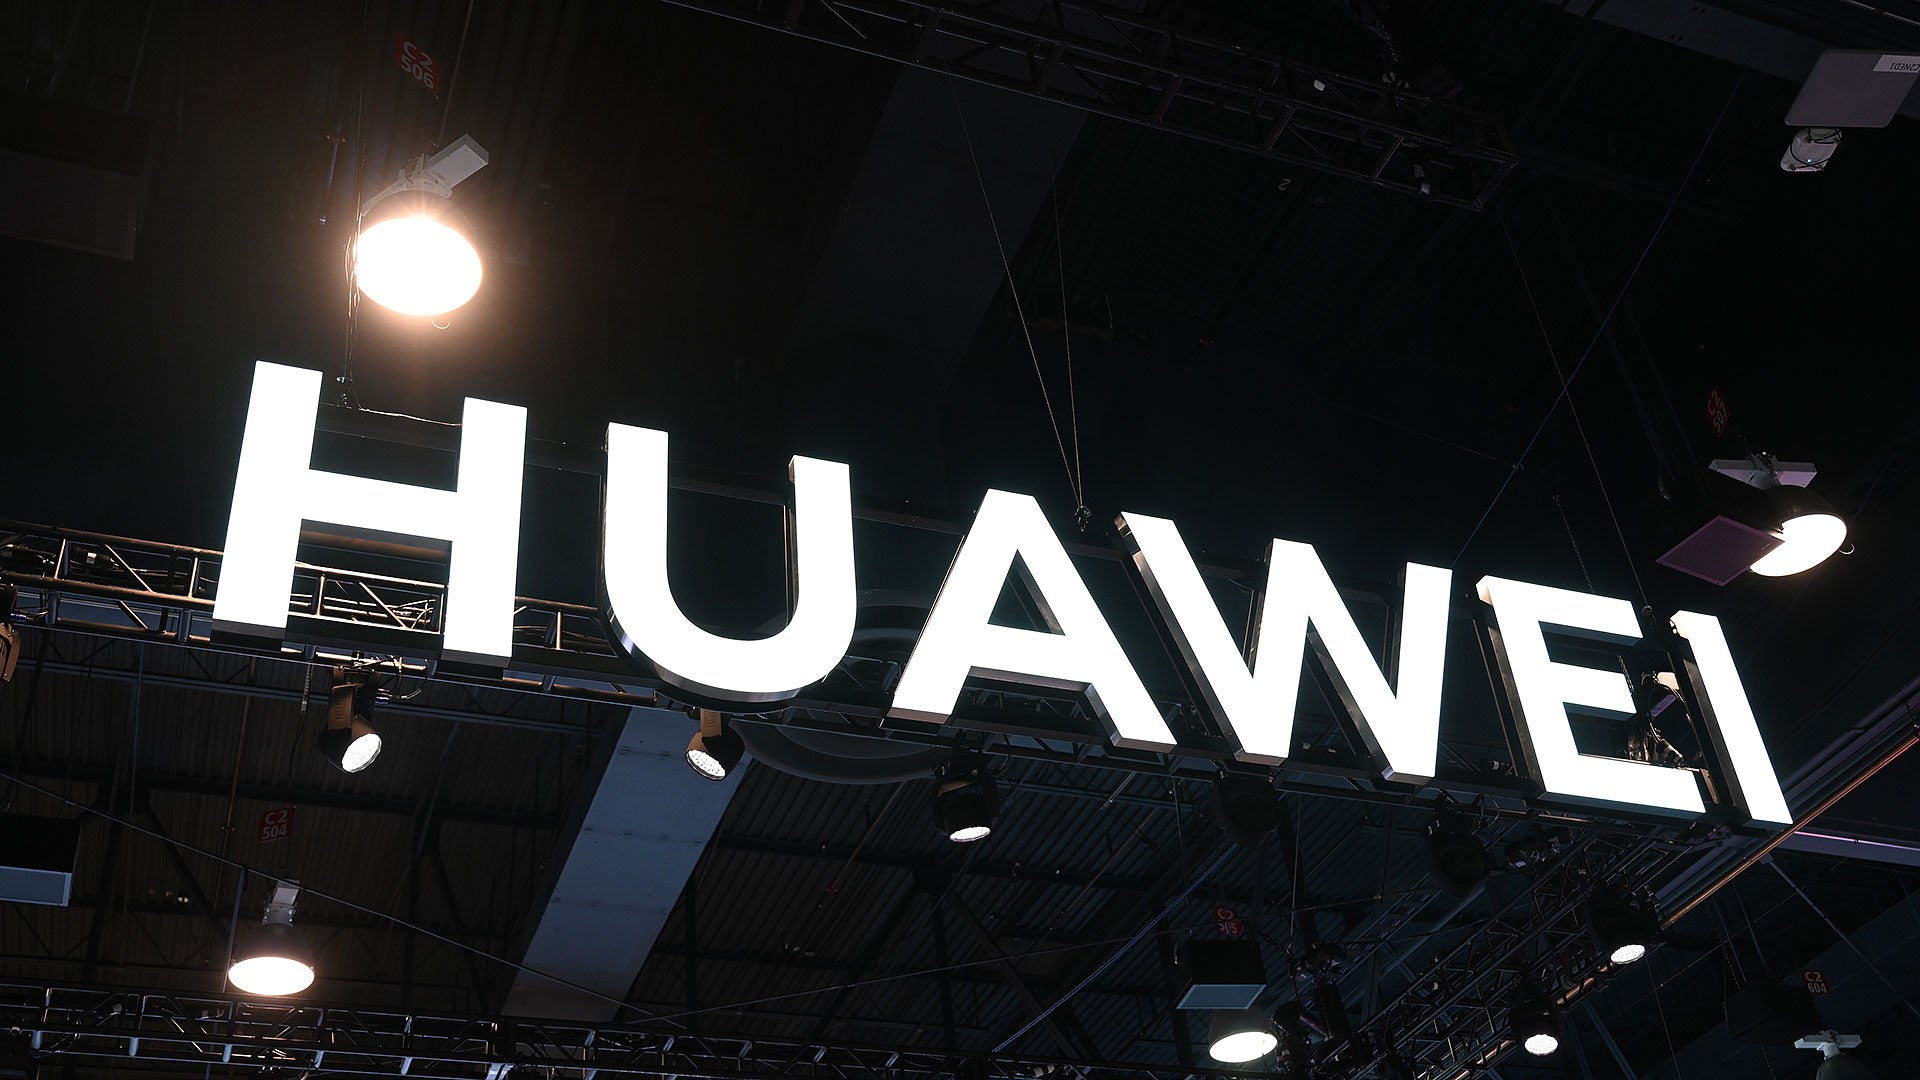 Huawei Hopes To Win Over Europe With Plans To Build 5G Factory In France